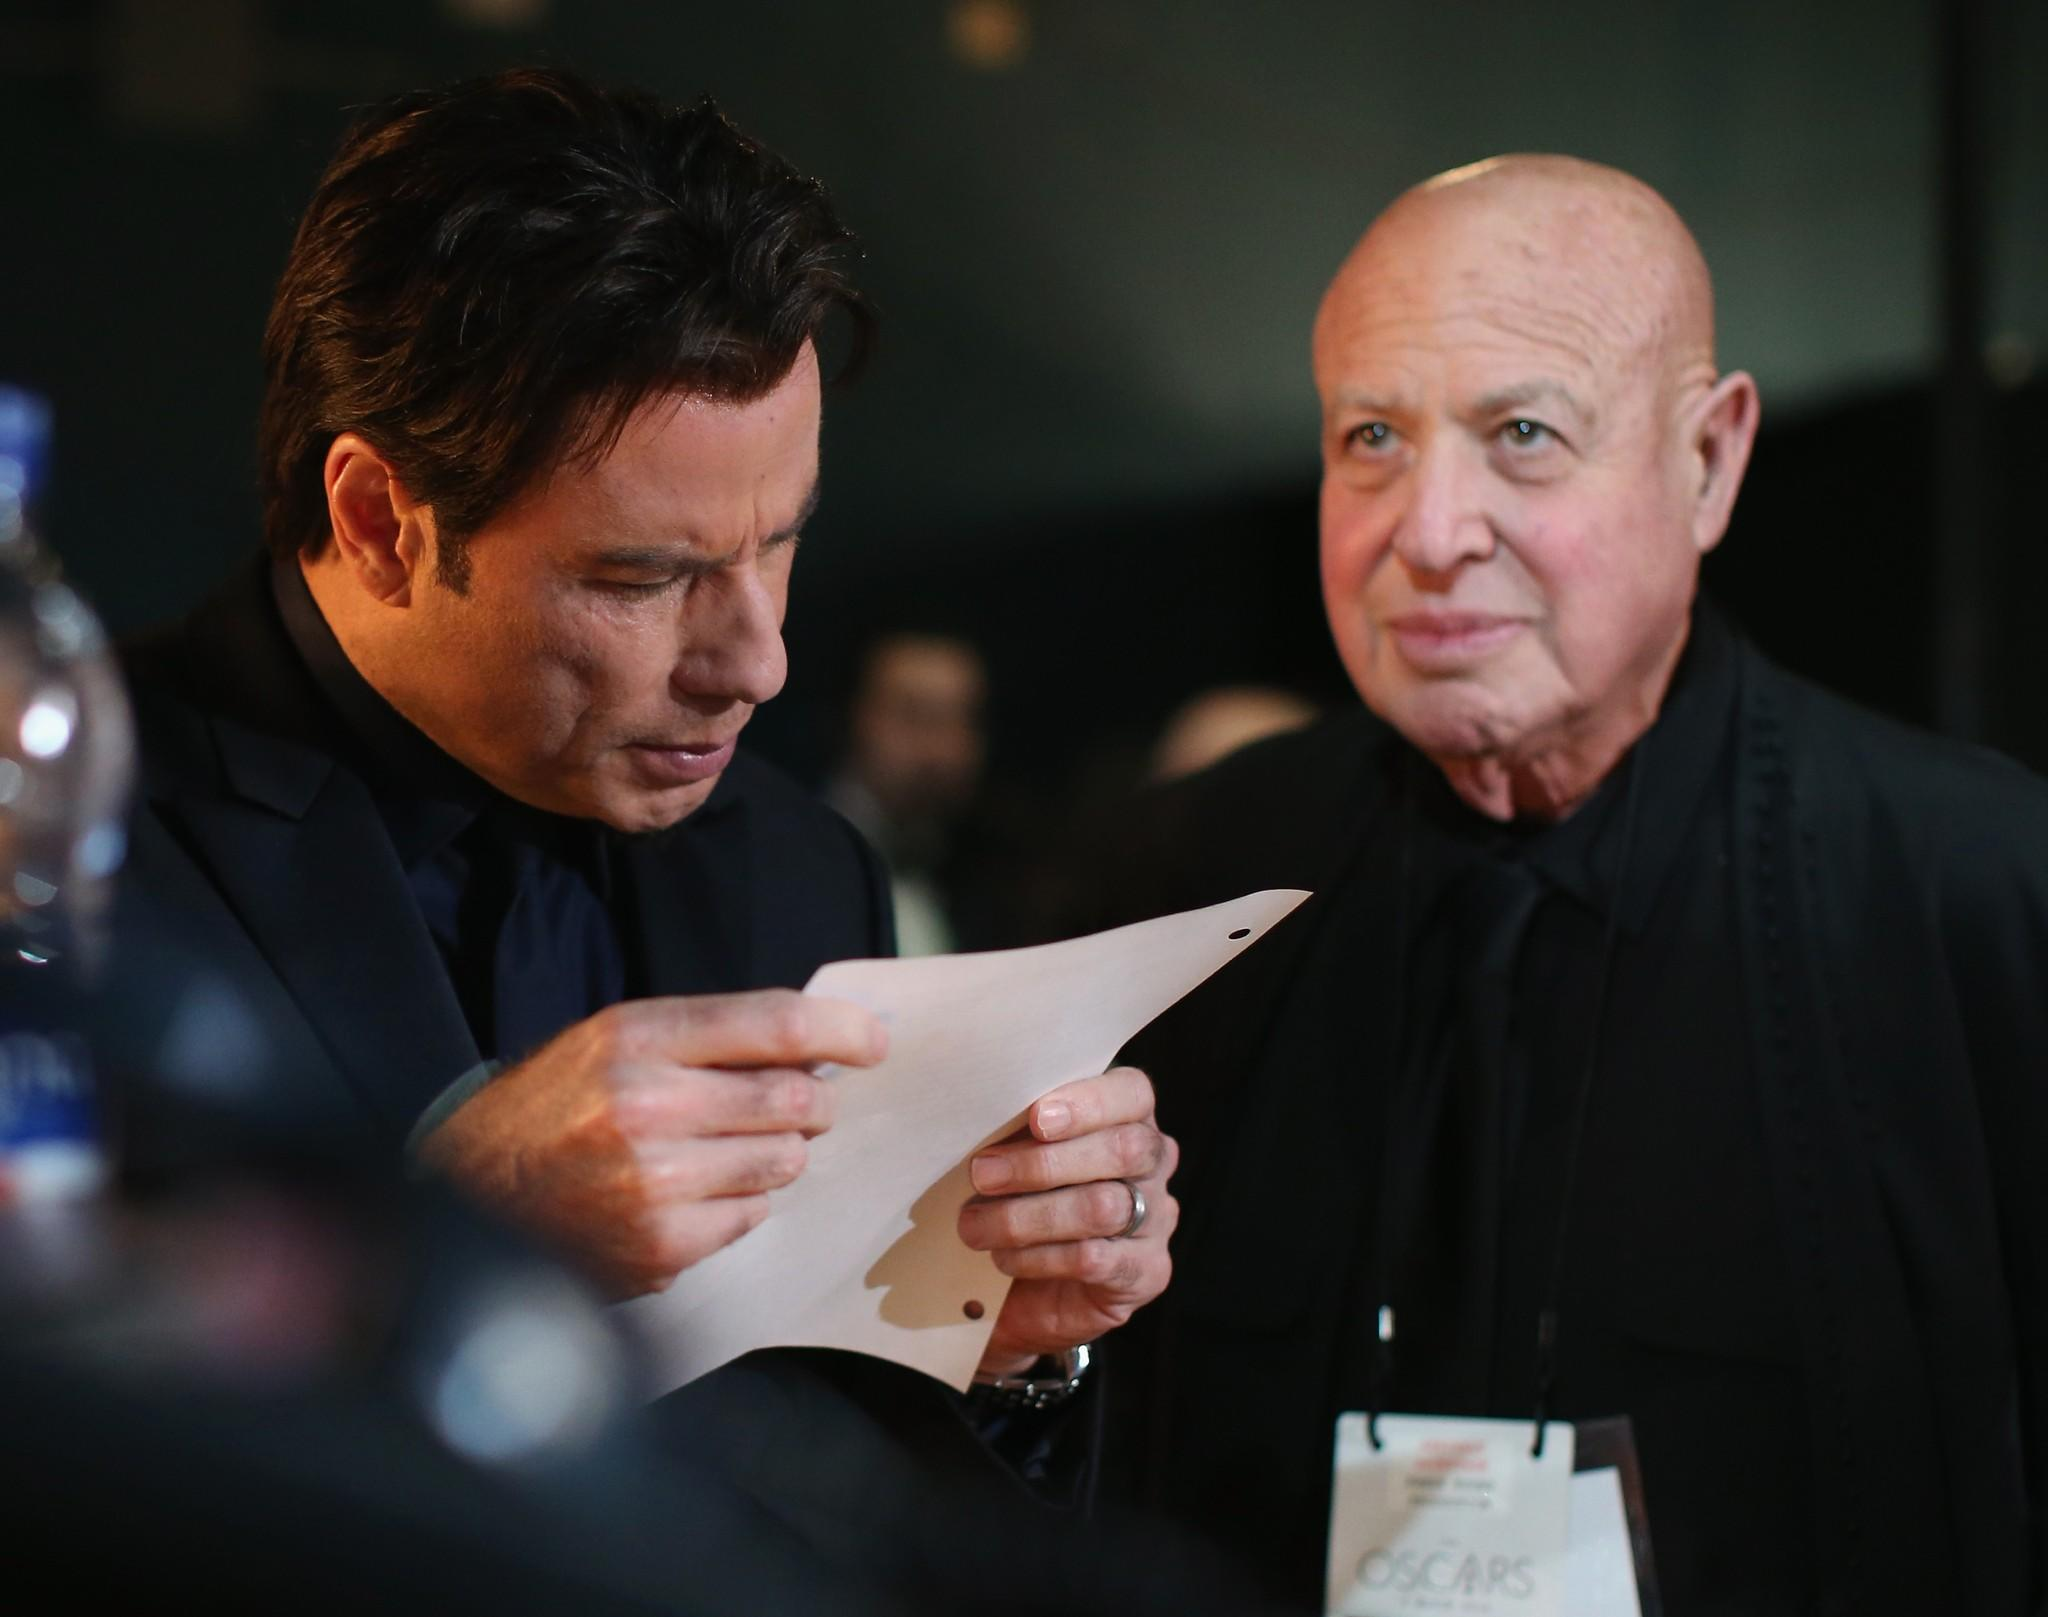 Actor John Travolta and publicist Paul Bloch backstage at the Oscars.